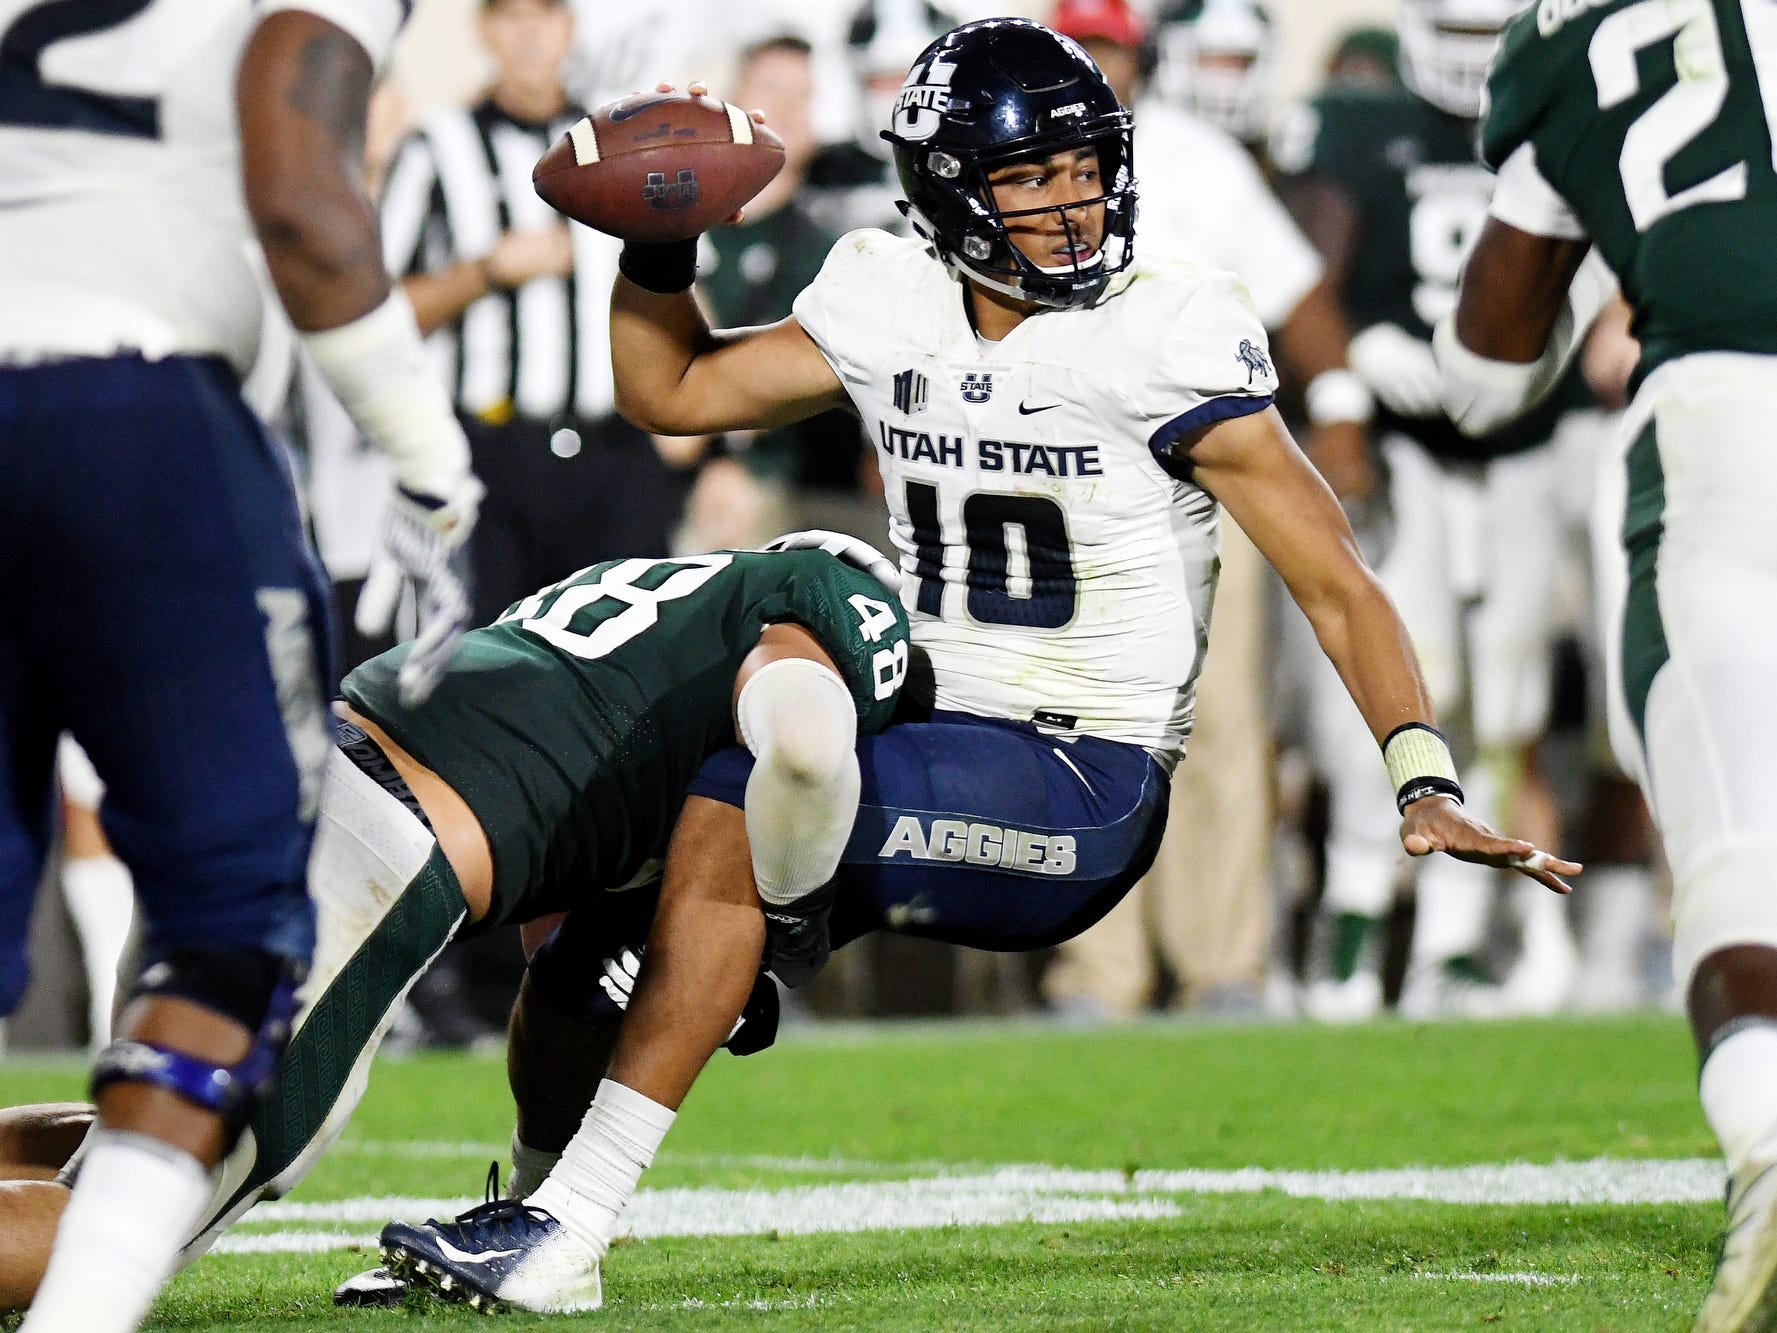 Michigan State's Kenny Willekes, left, tackles Utah State's Jordan Love during the fourth quarter on Friday, Aug. 31, 2018, at Spartan Stadium in East Lansing.